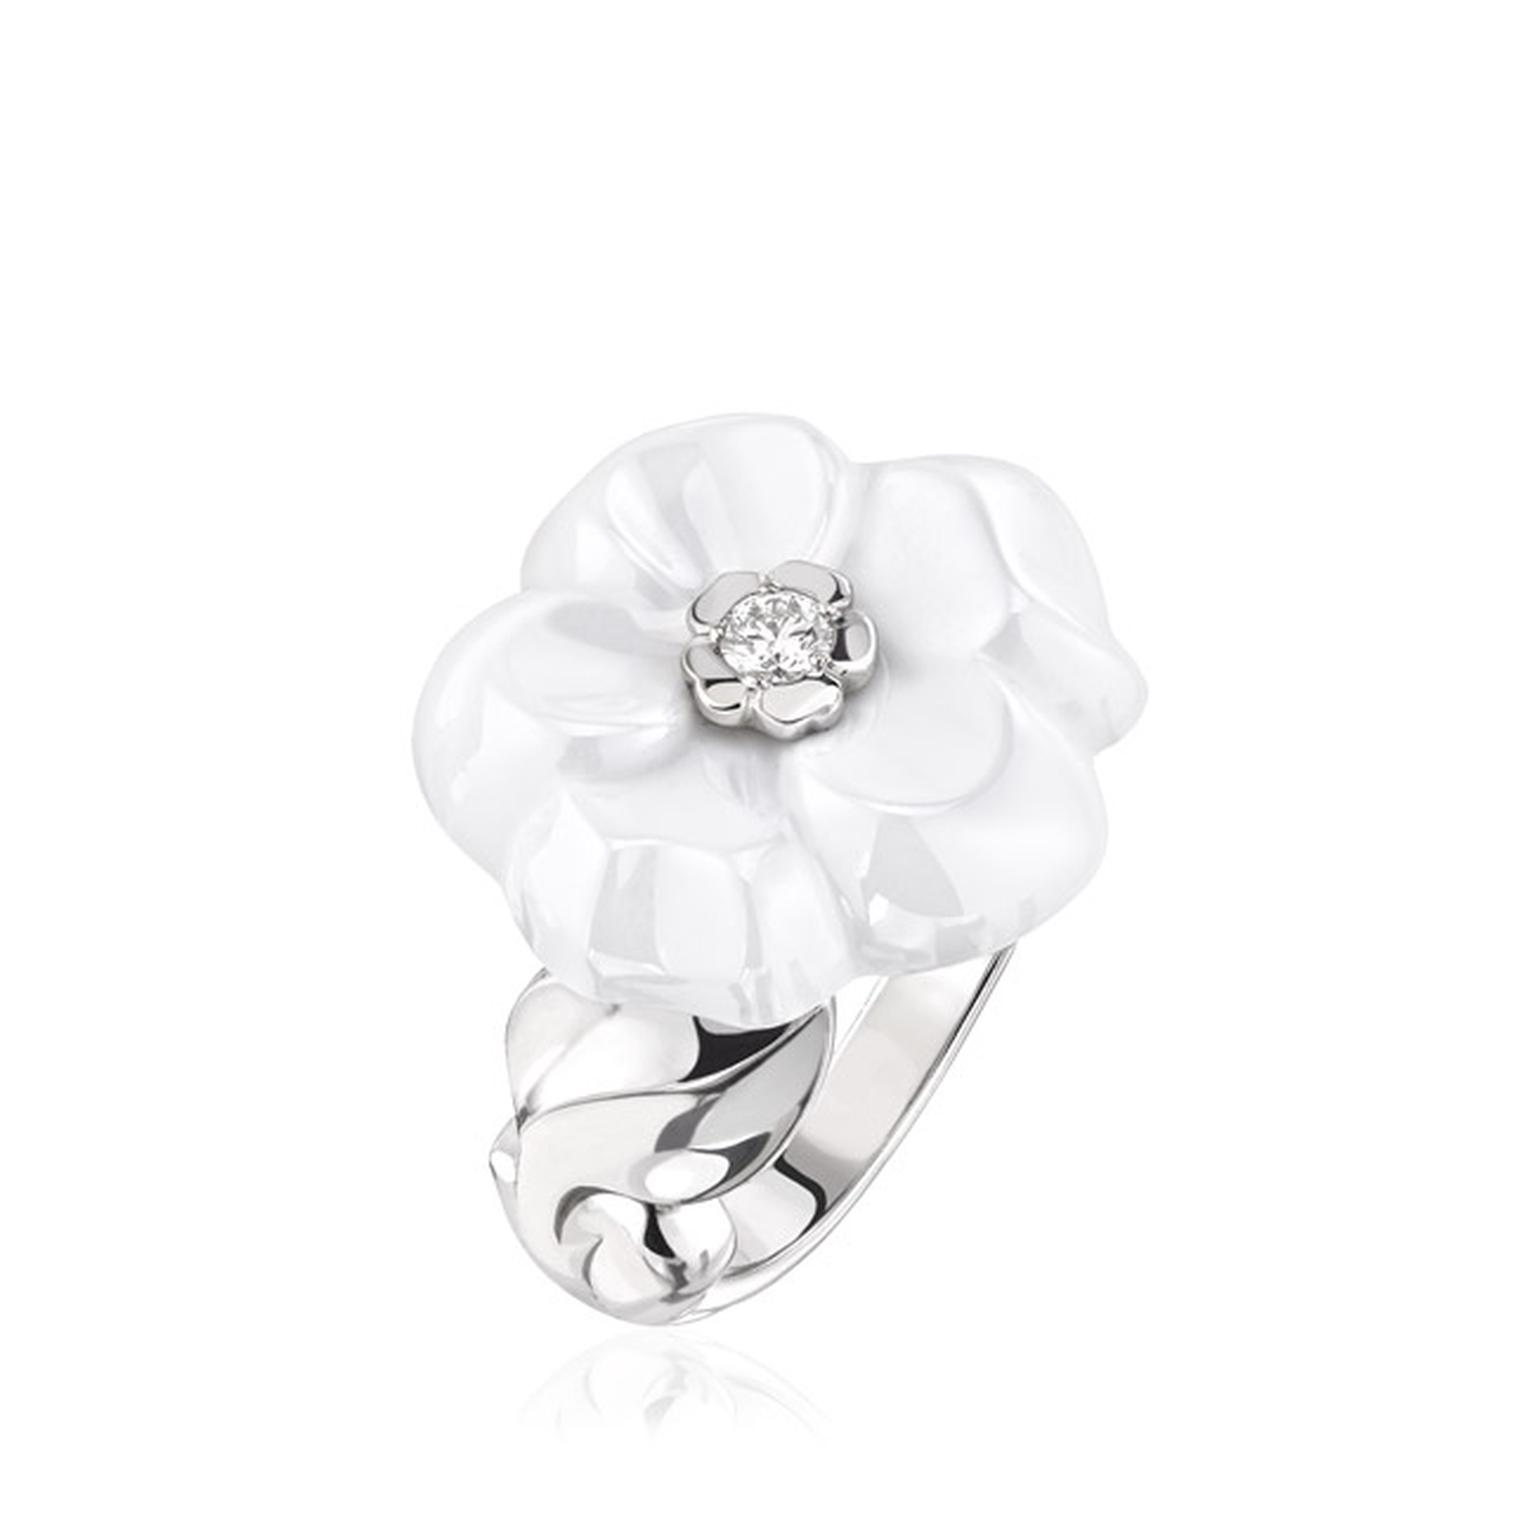 Chanel-Camelia-Galbe-ring-white-ceramic-main